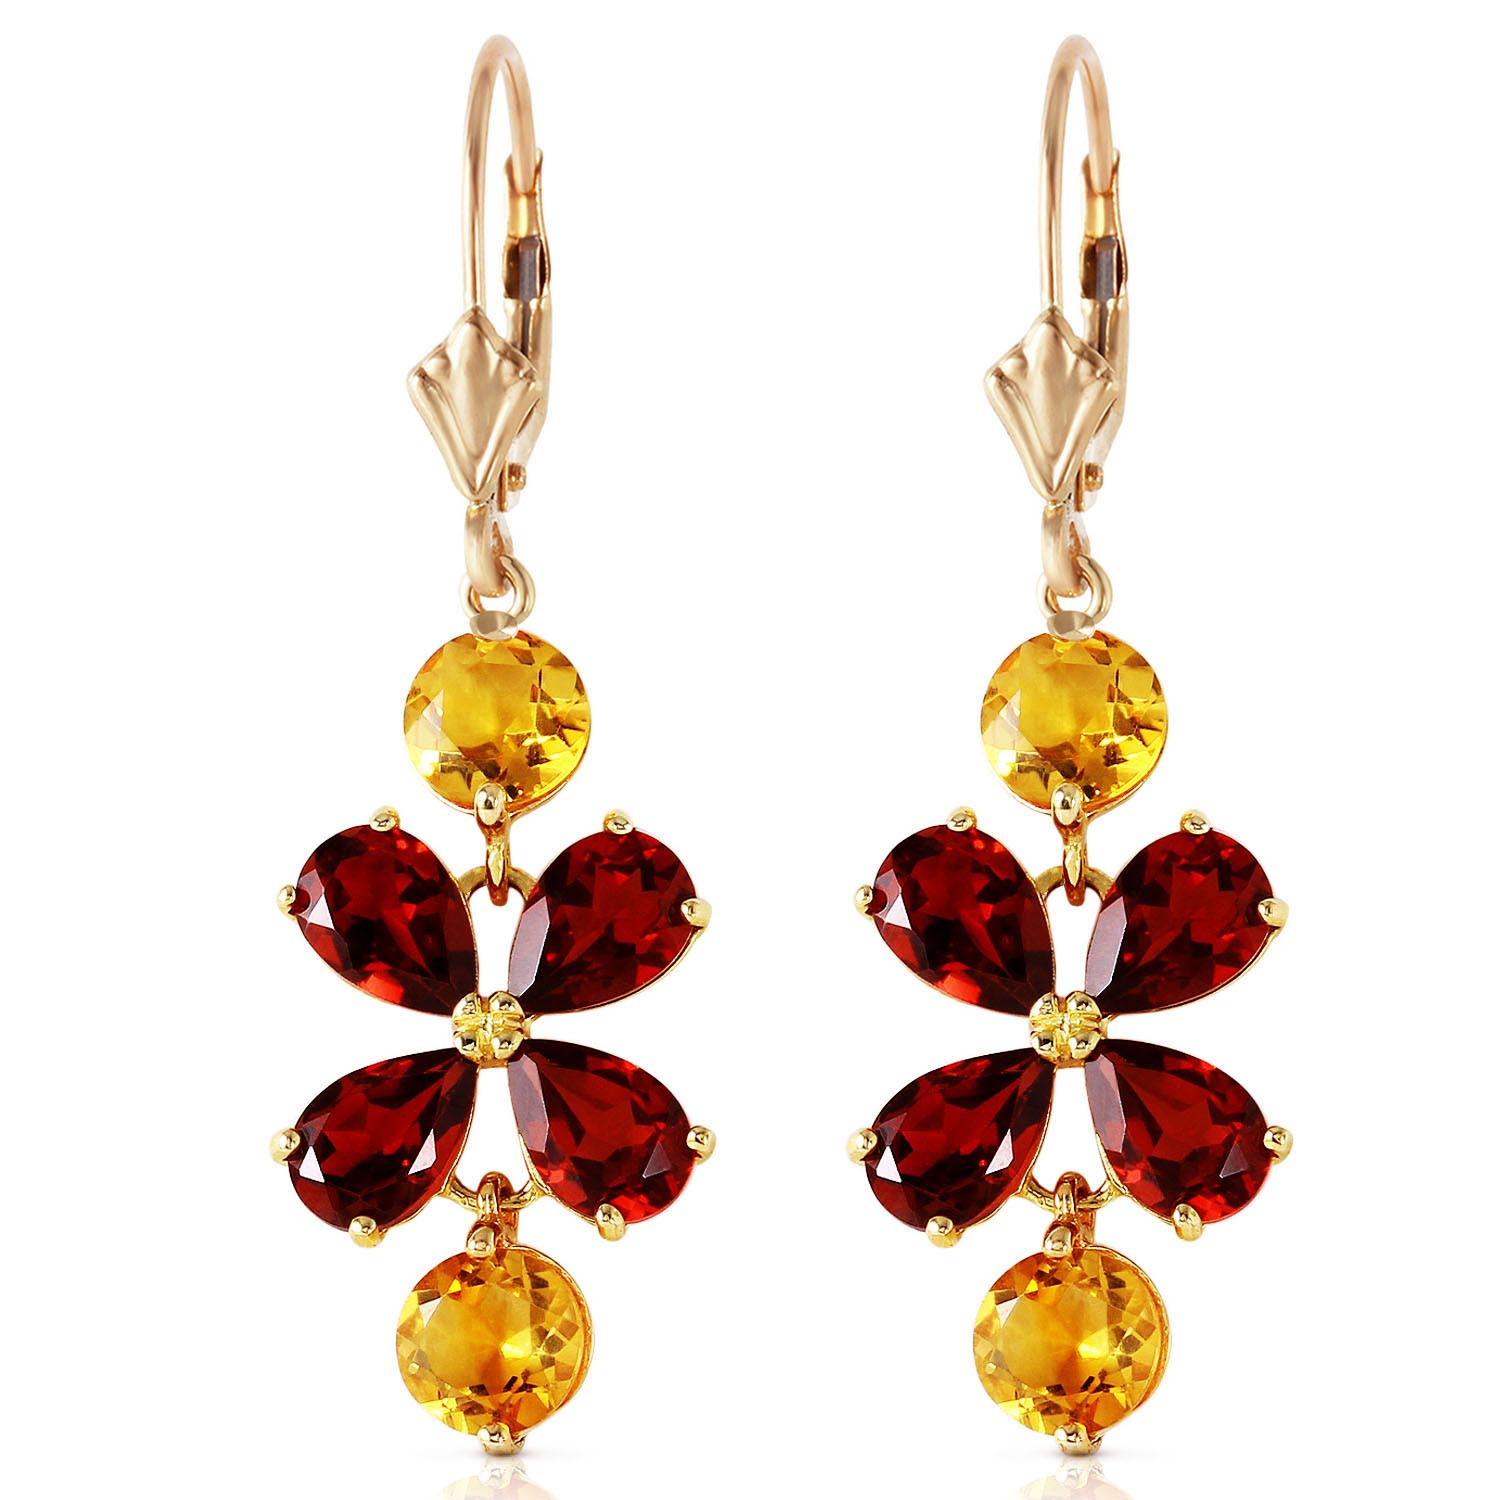 Citrine and Garnet Blossom Drop Earrings 5.32ctw in 9ct Gold